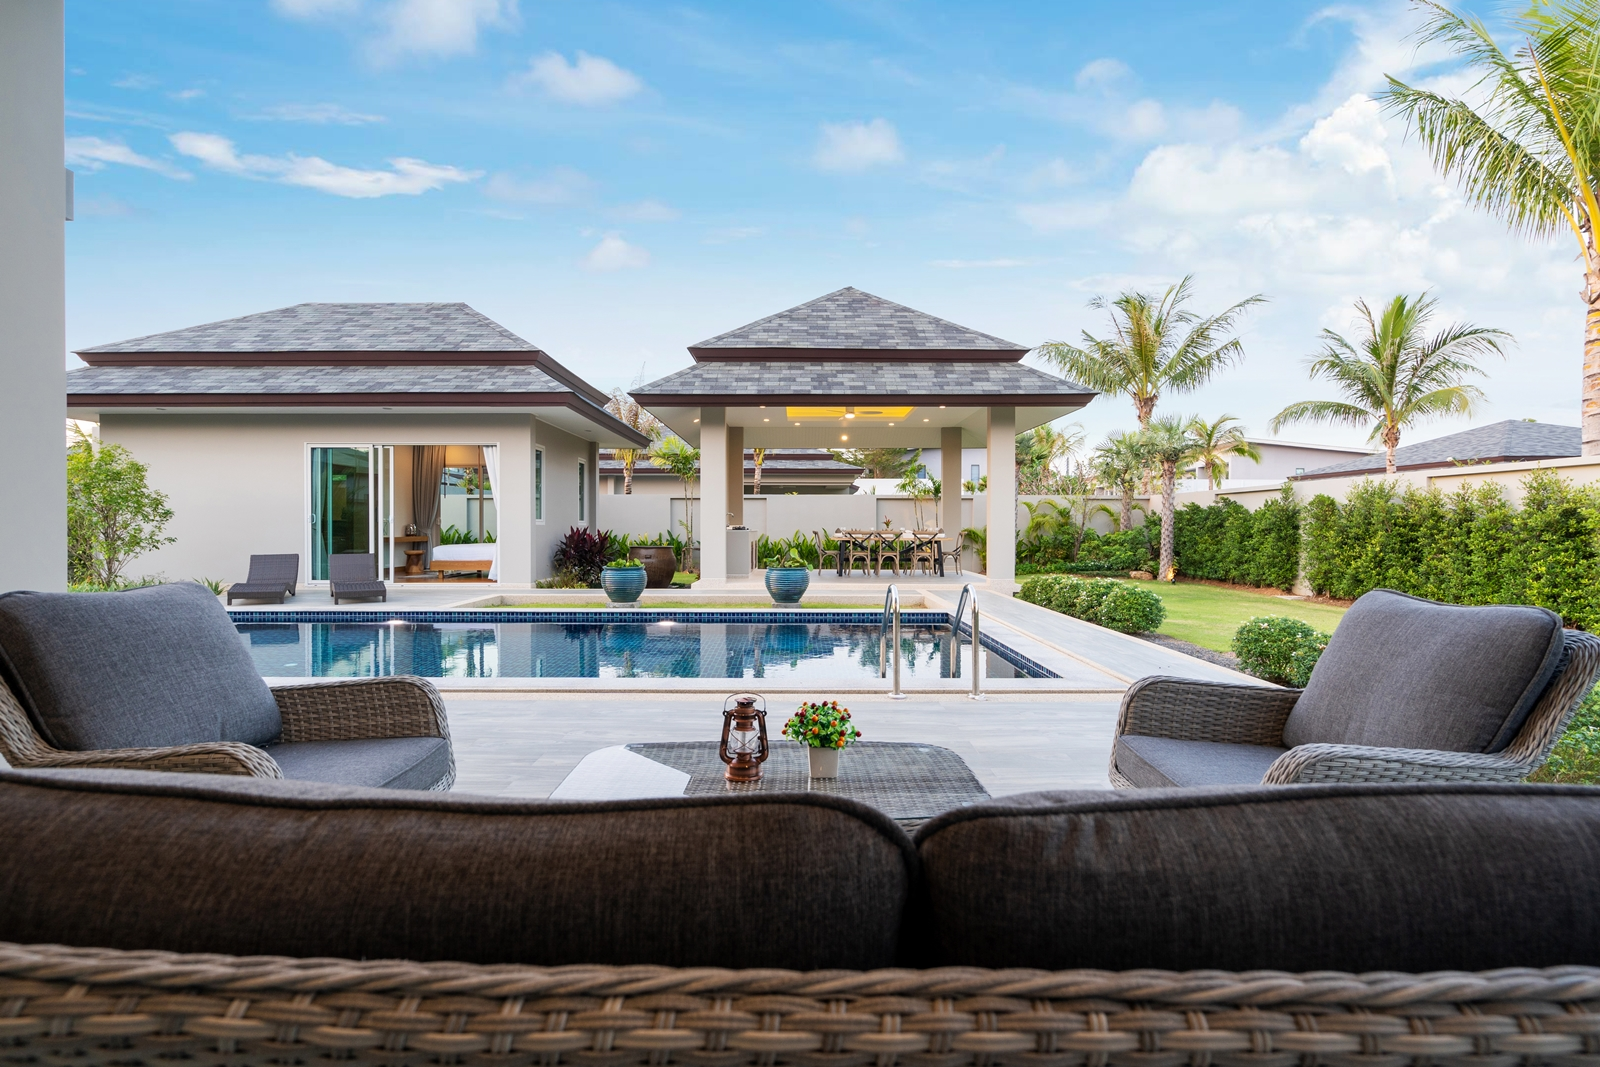 Peykaa Estate Unti 209 Modern 4 Bedroom Pool Villa for Sale in Layan, Phuket